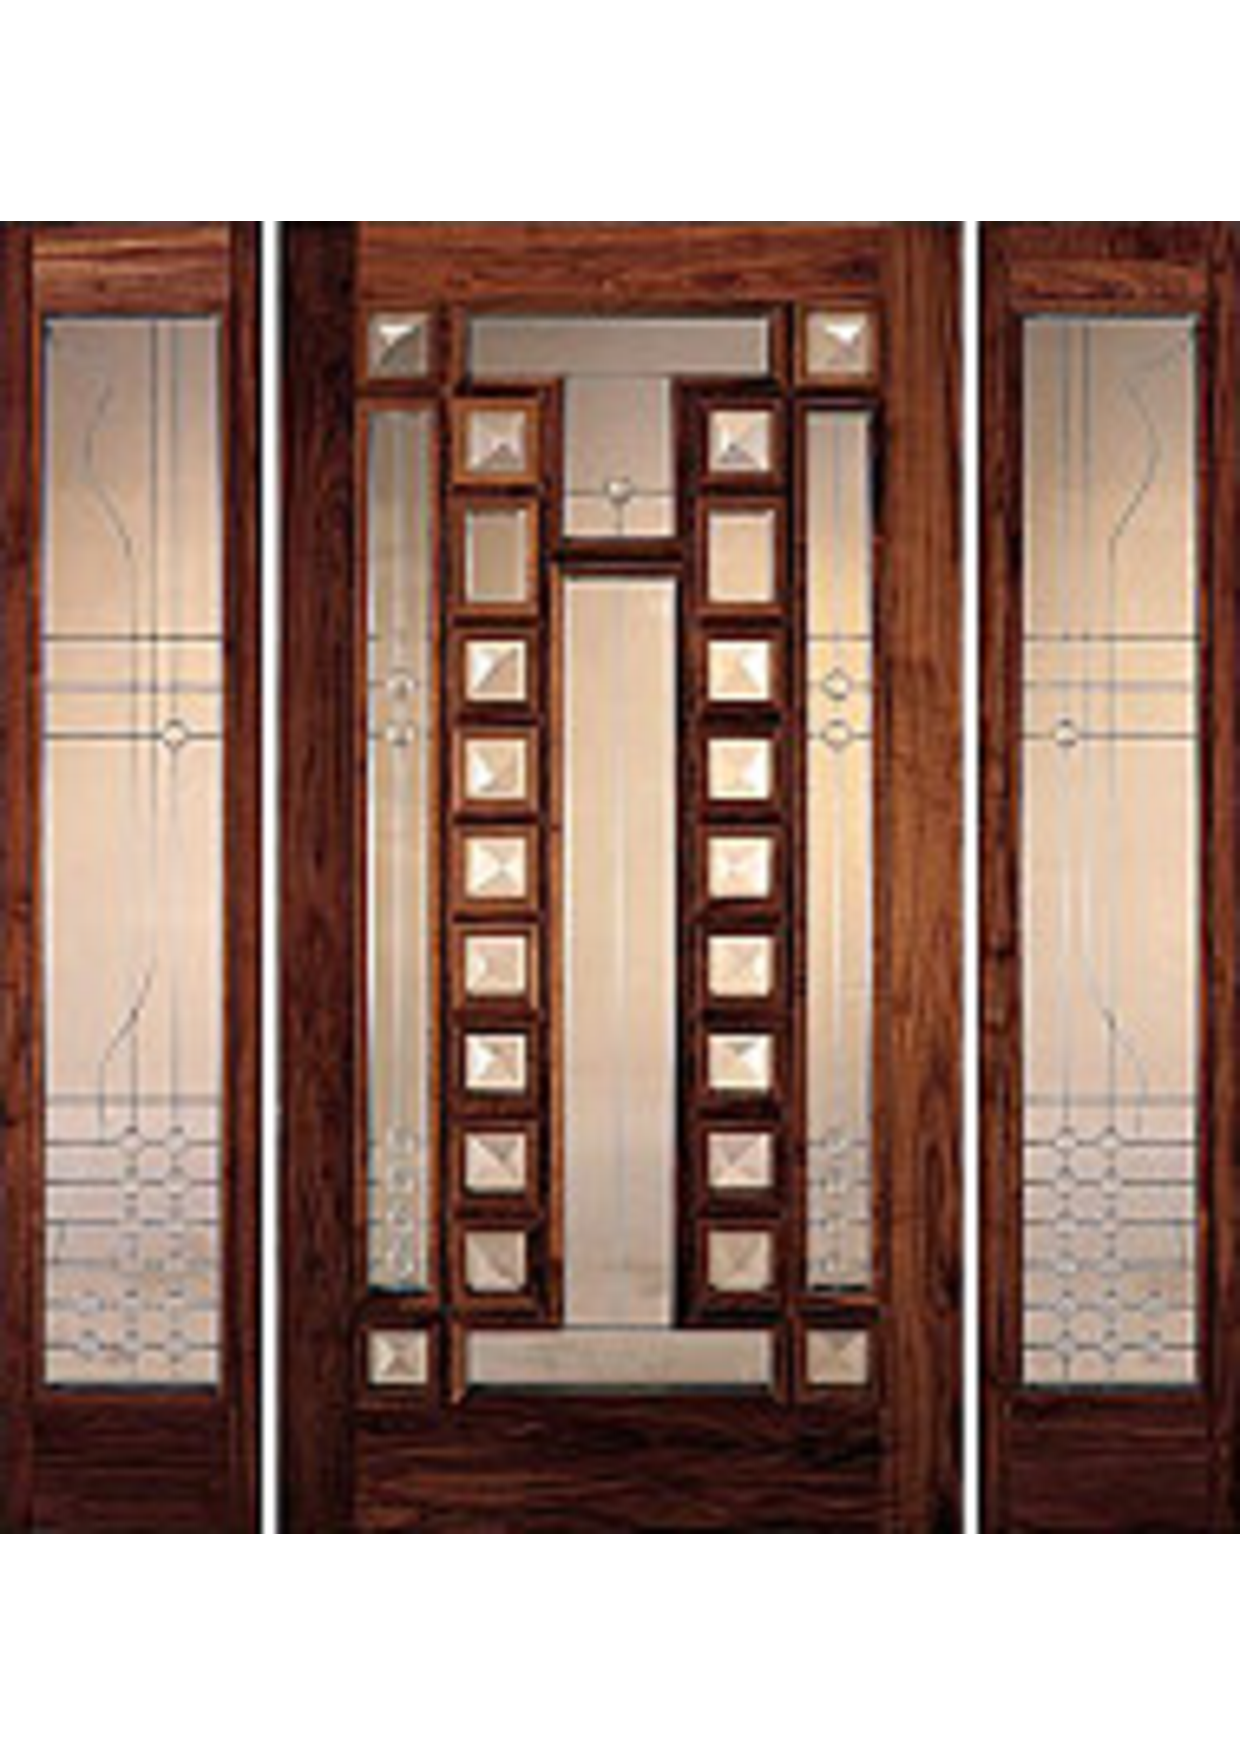 Living room door designs in india nakicphotography for Farnichar door